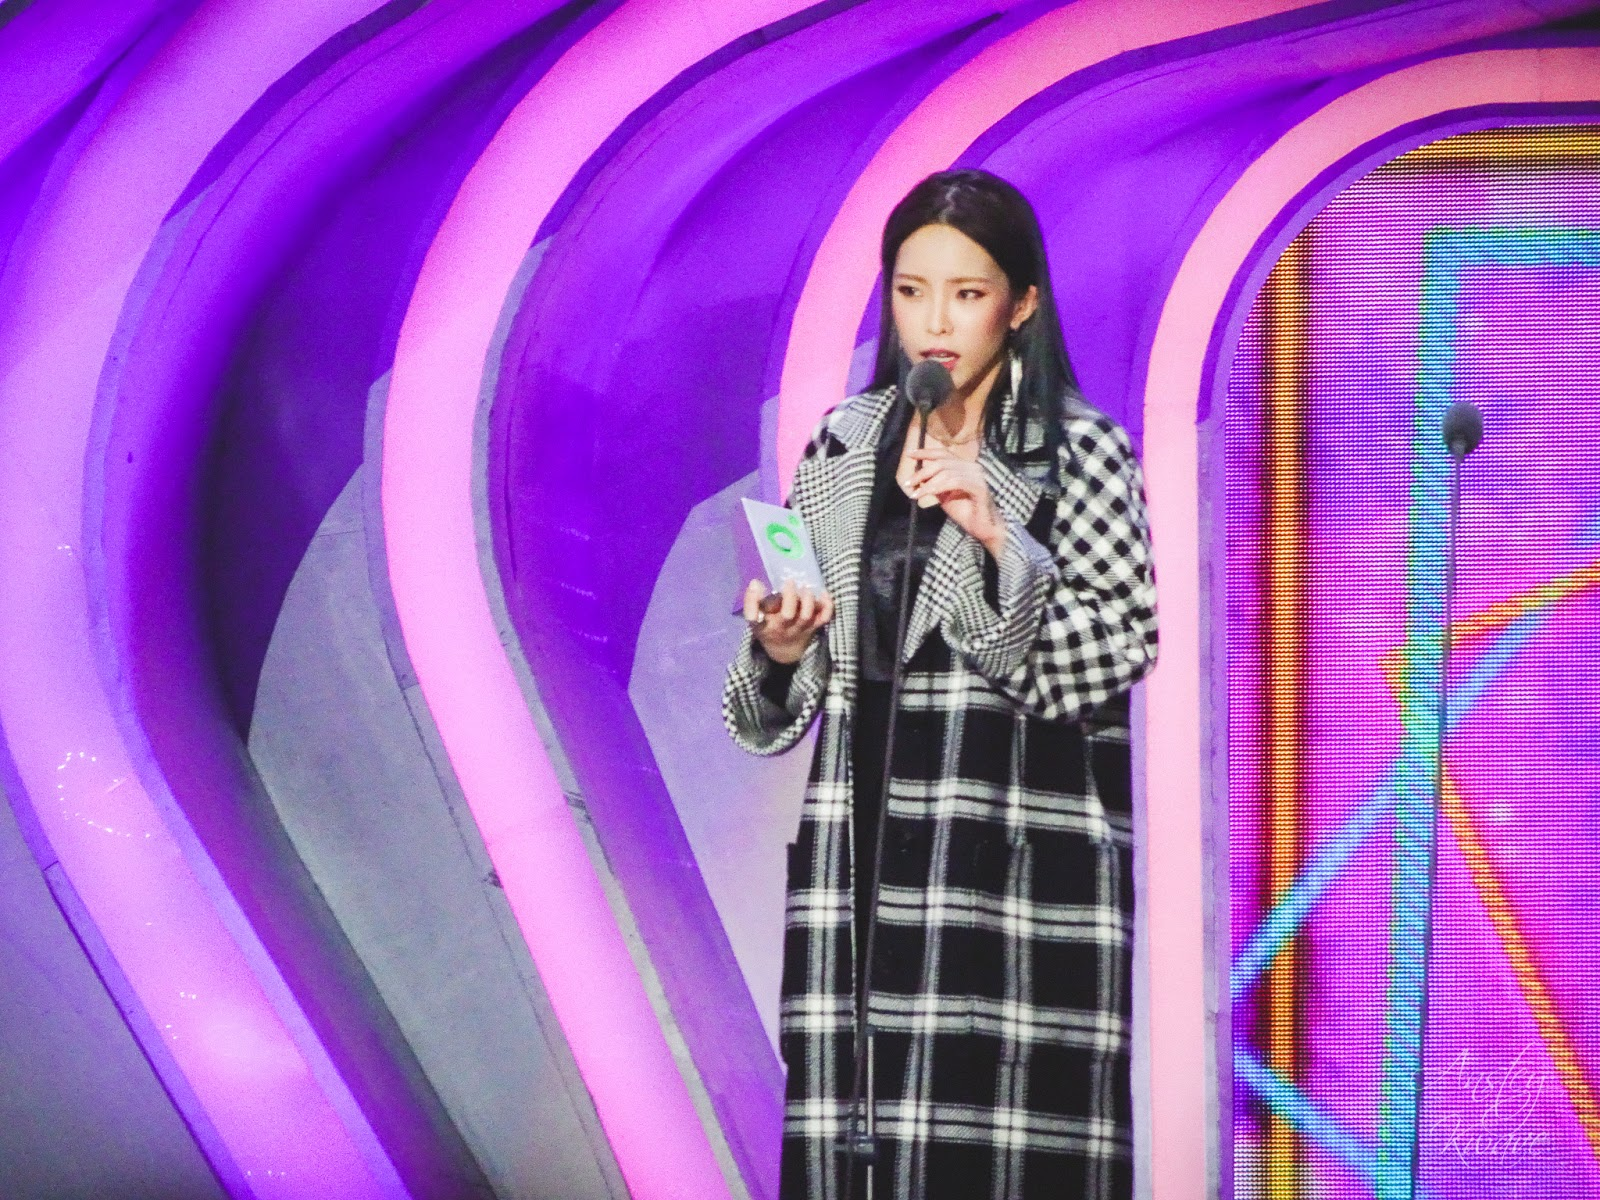 Heize receiving award on stage at Melon Music Awards (MMA) 2017 in Seoul, South Korea